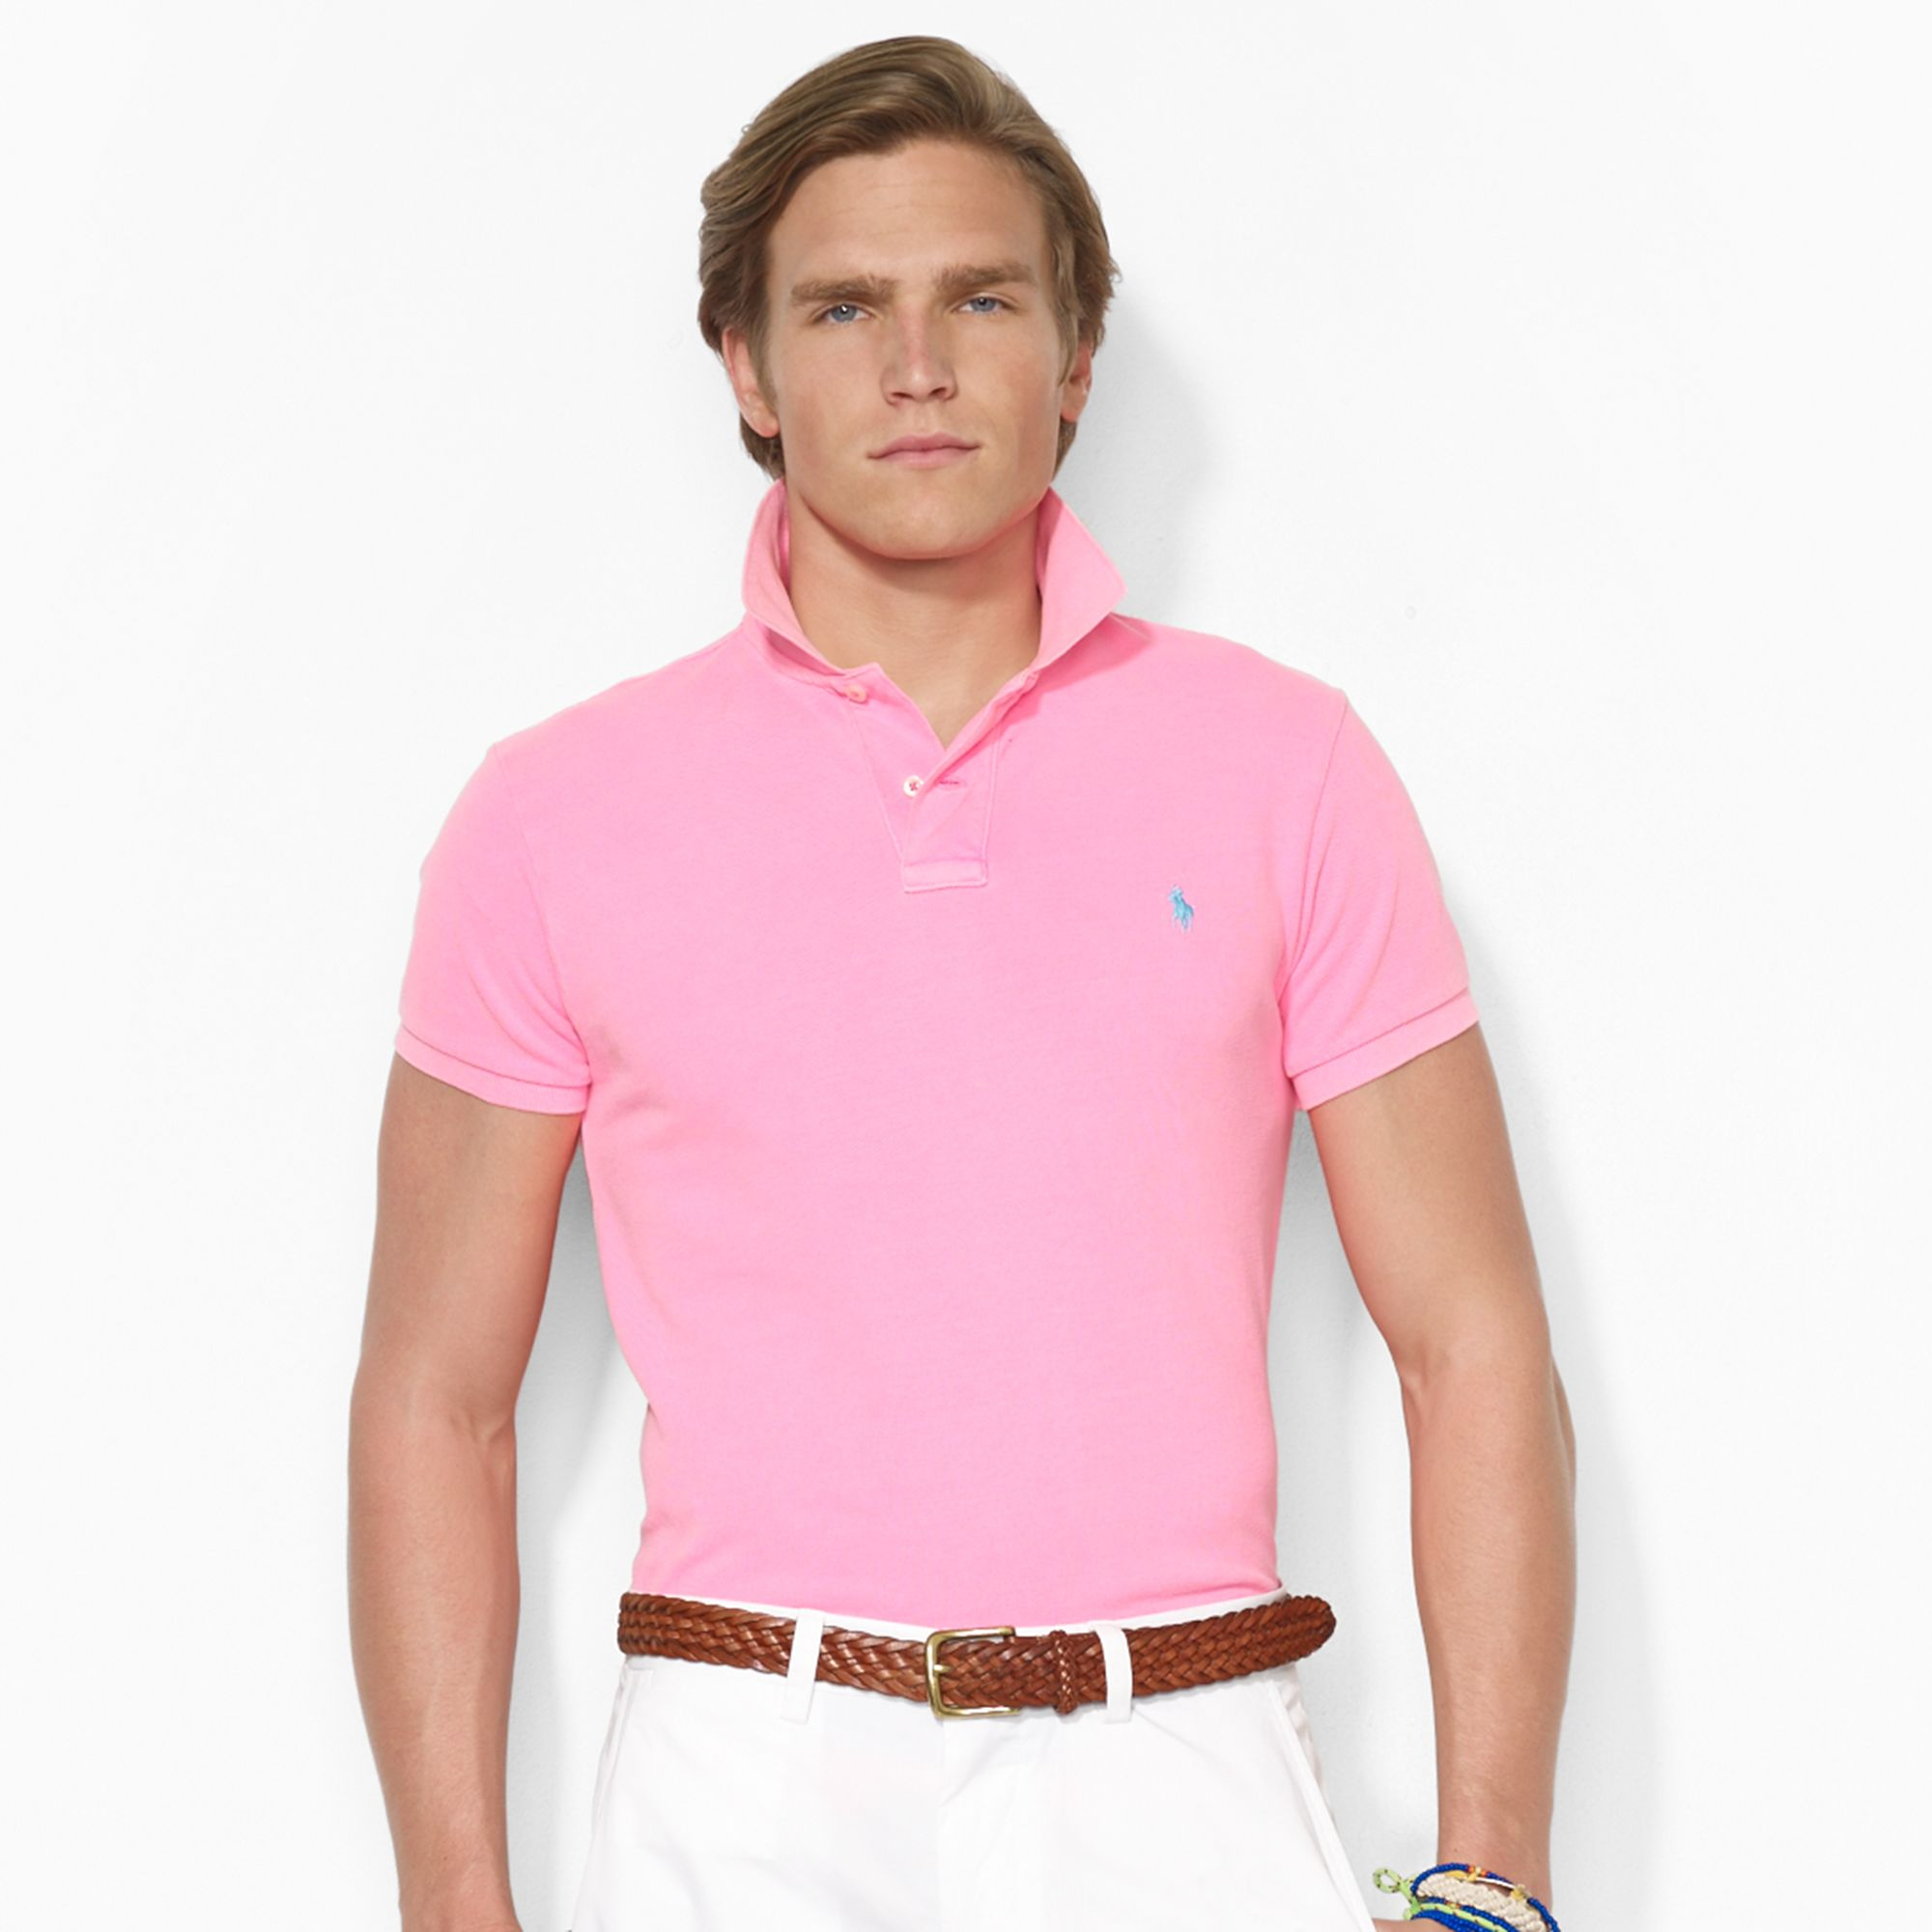 Polo ralph lauren custom neon mesh polo shirt in pink for Man in polo shirt